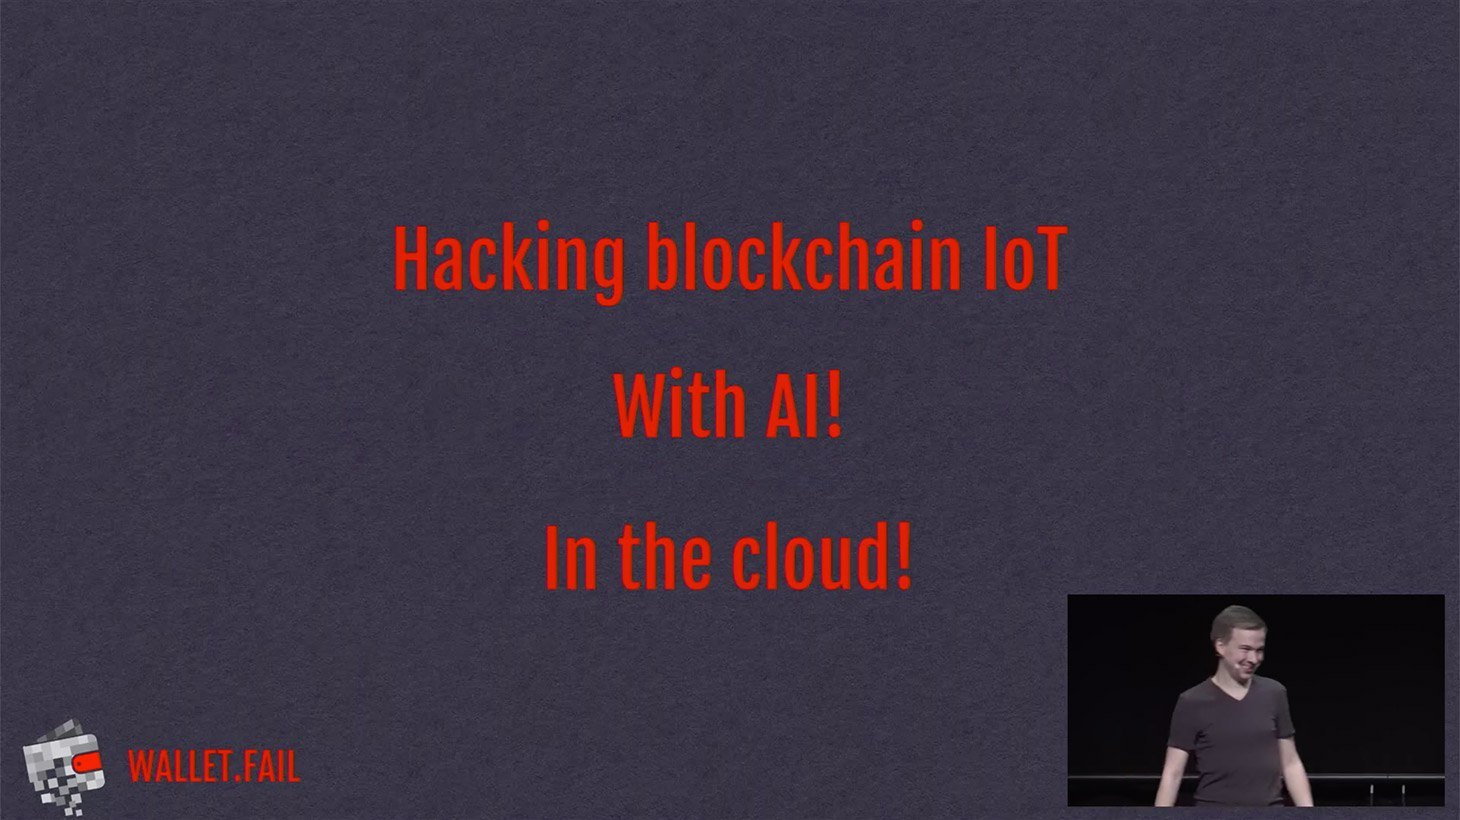 Hackerare un dispositivo blockchain IoT con intelligenza artificiale su cloud.